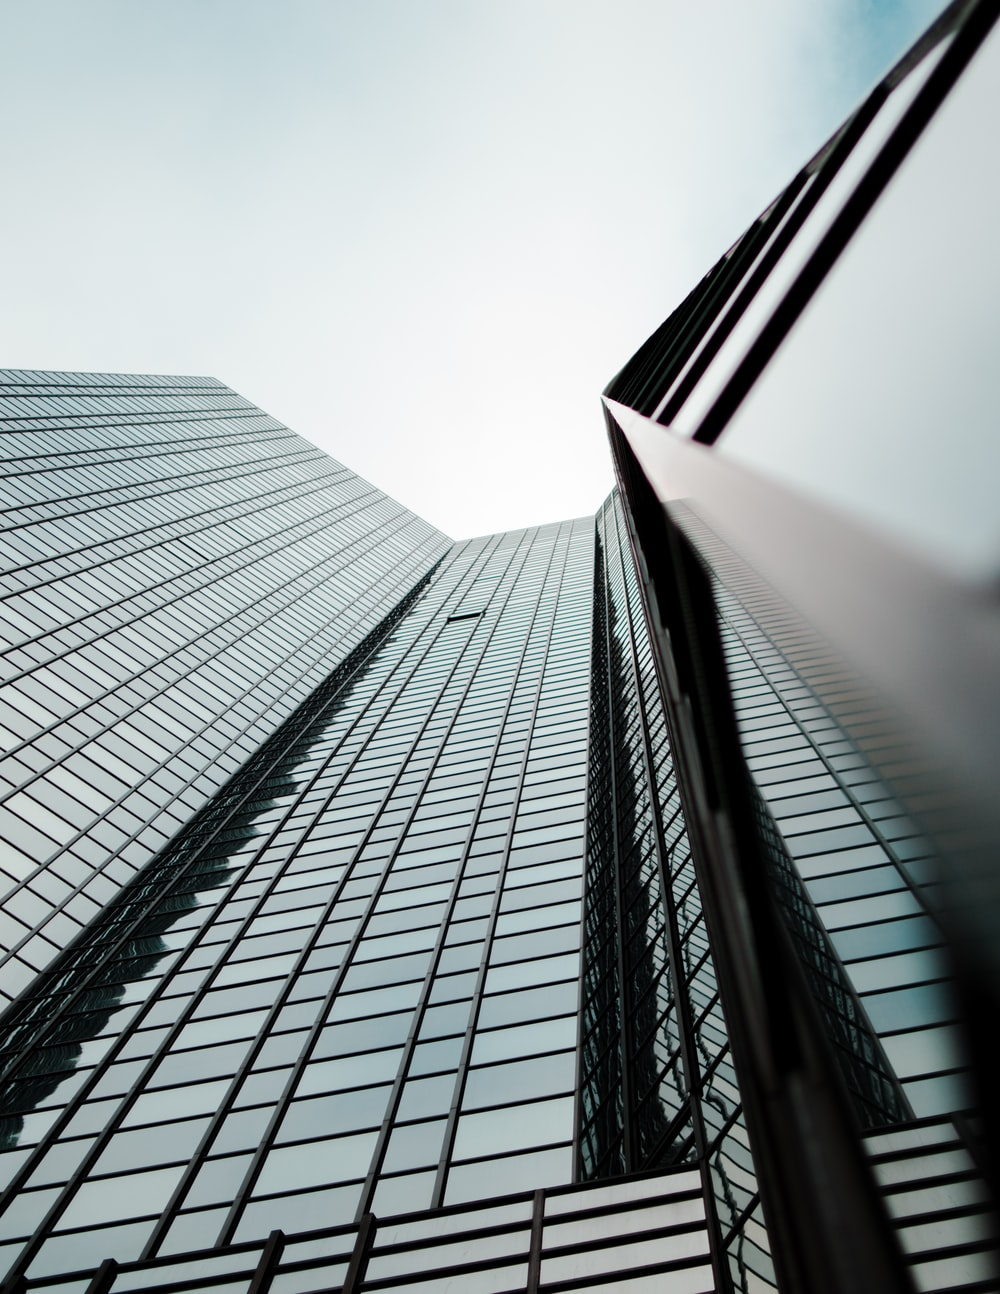 worm's eye view of glass building